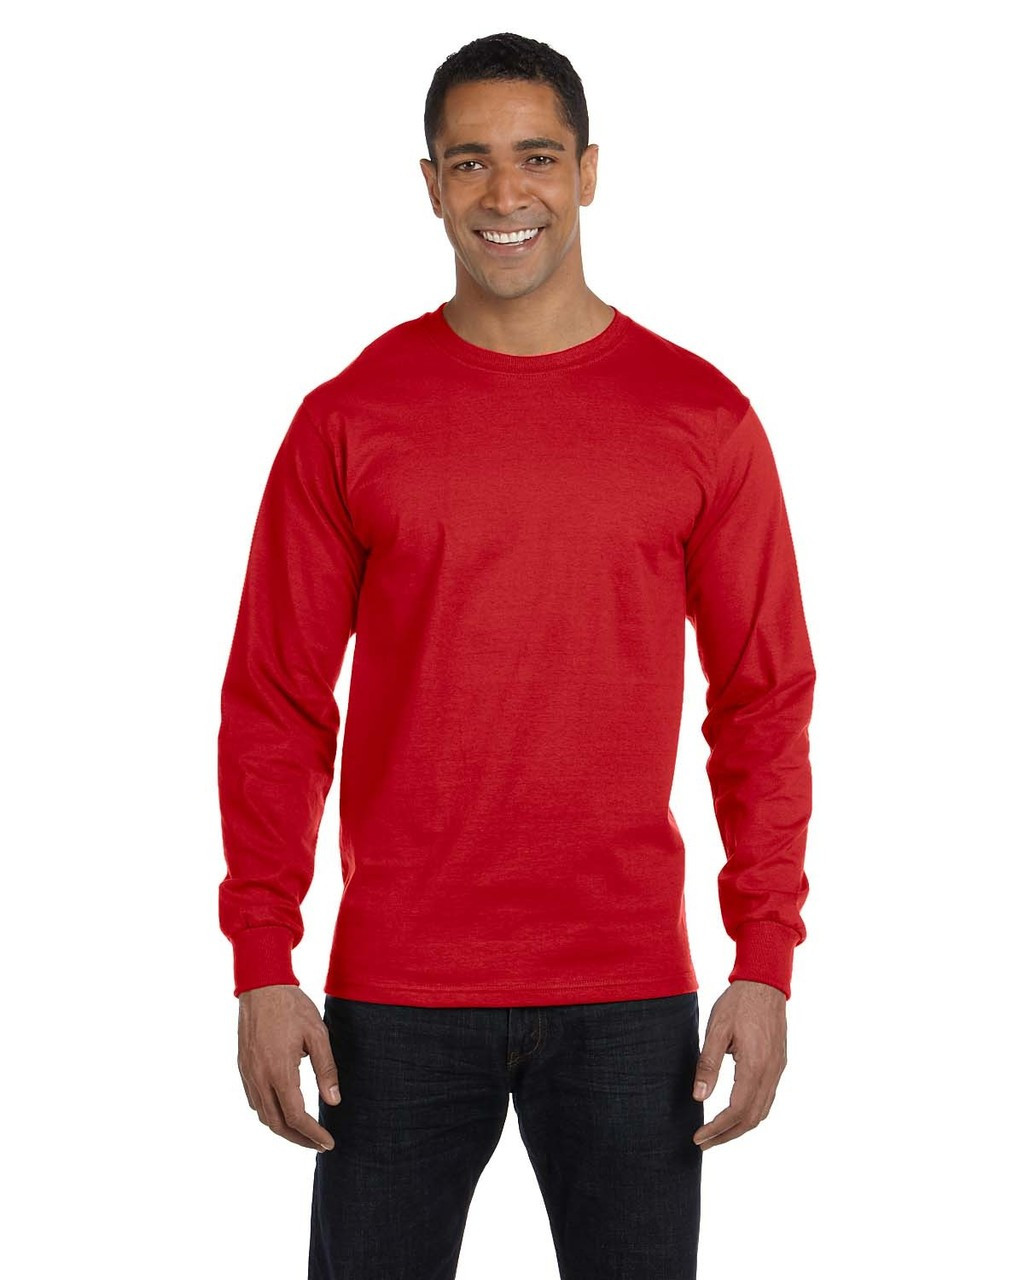 Red - G840 Gildan DryBlend 50/50 Long Sleeve T-Shirt | Blankclothing.ca